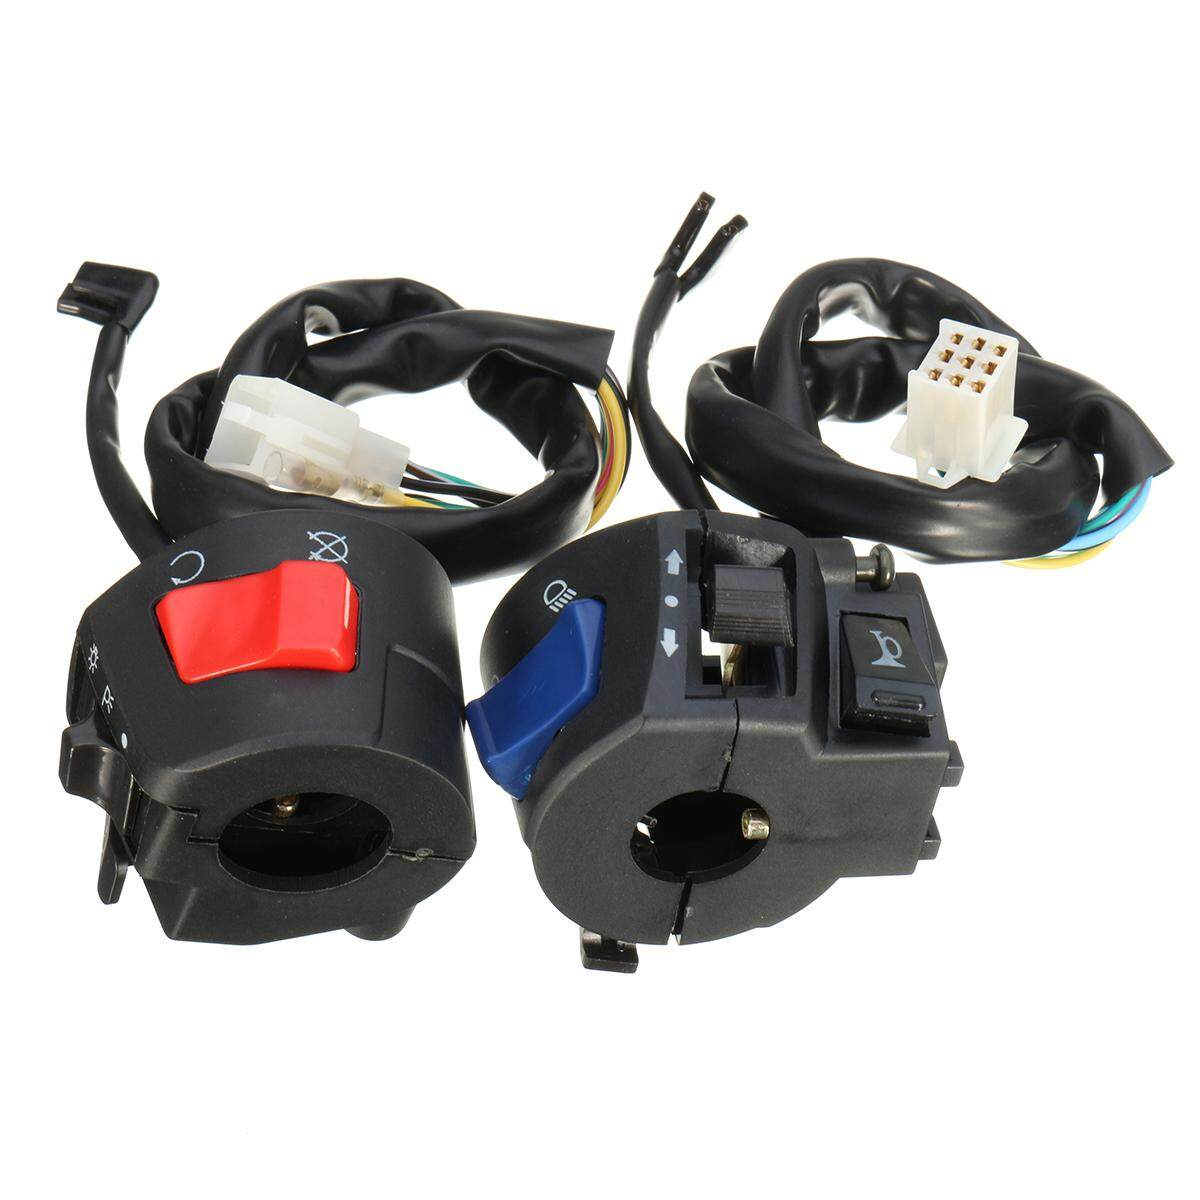 Car Switches For Sale Auto Online Brands Prices Wiring A 8 Wire Turn Signal W Horn 1 Pair 7 Inch 22mm Motorcycle Handlebar Light Controller Switch